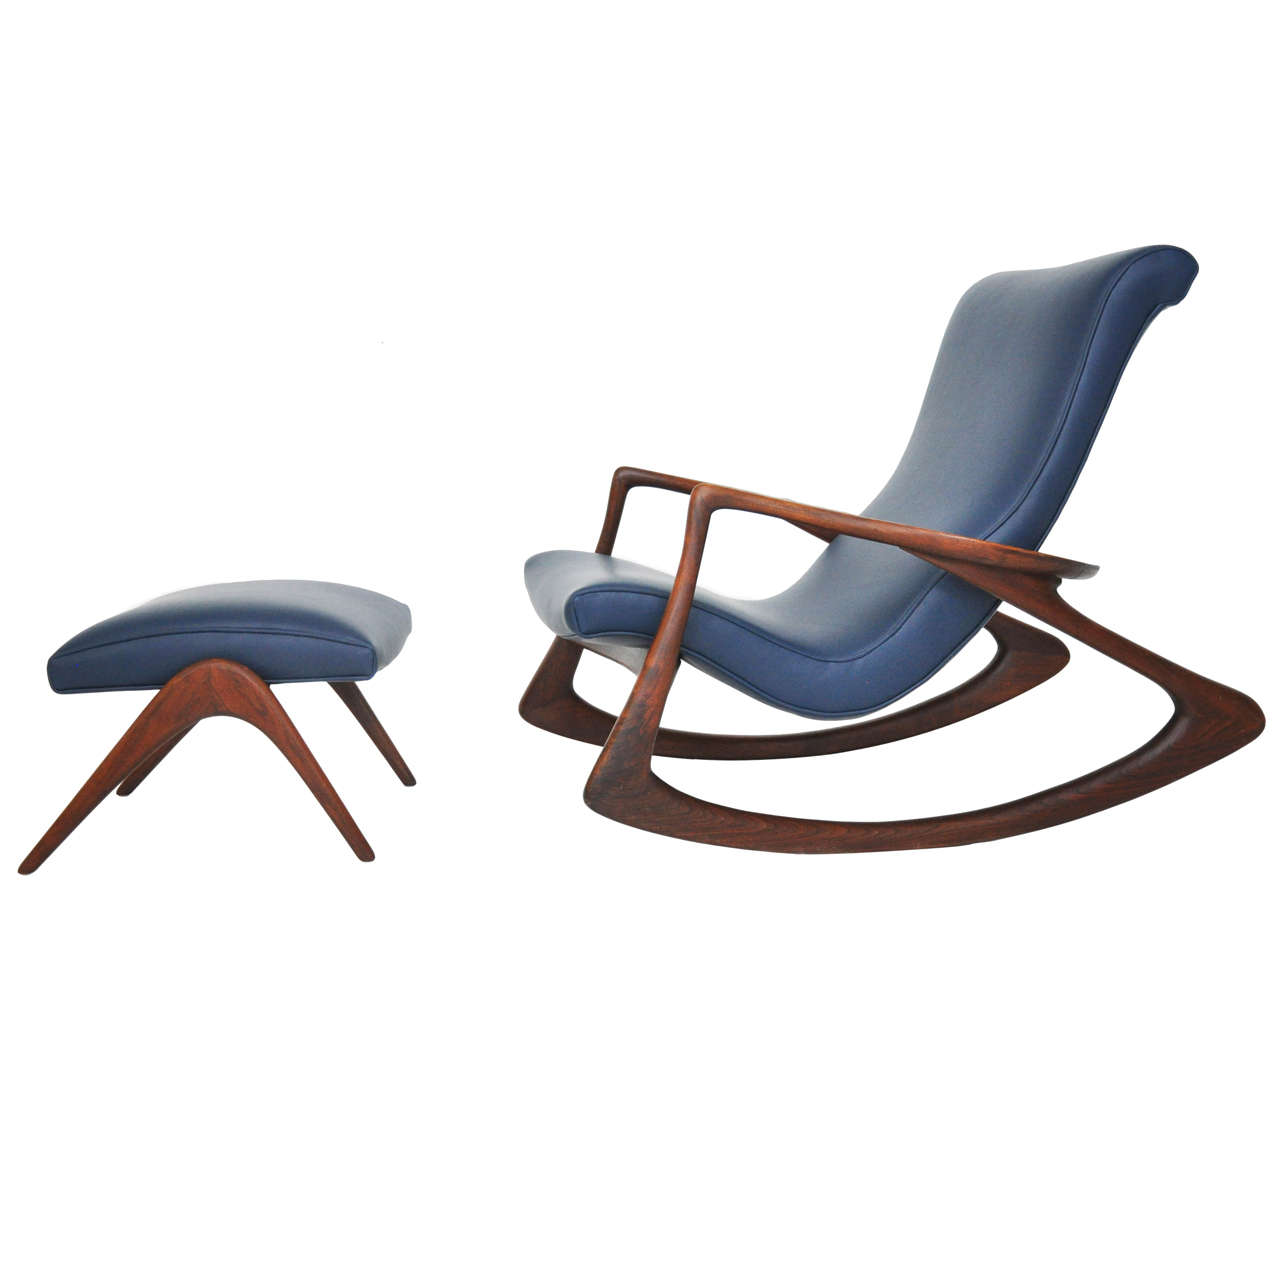 vladimir kagan rocking chair step 2 chairs with ottoman at 1stdibs for sale